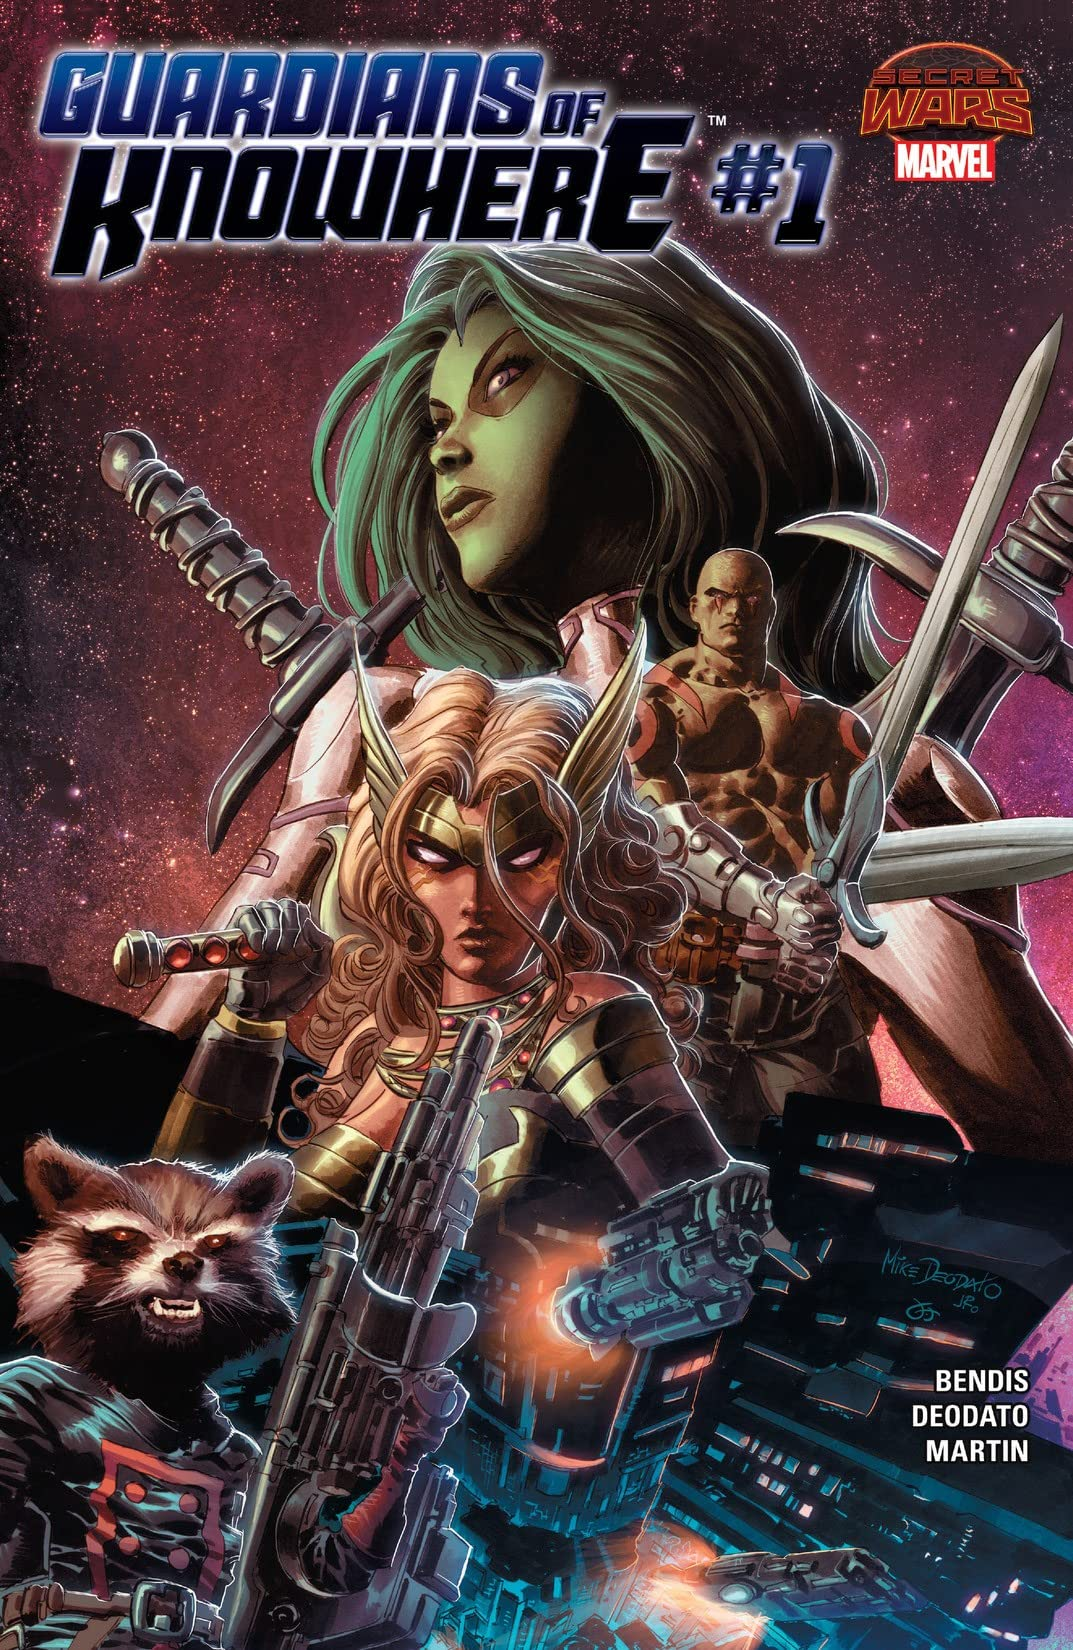 Guardians of Knowhere (2015) #1